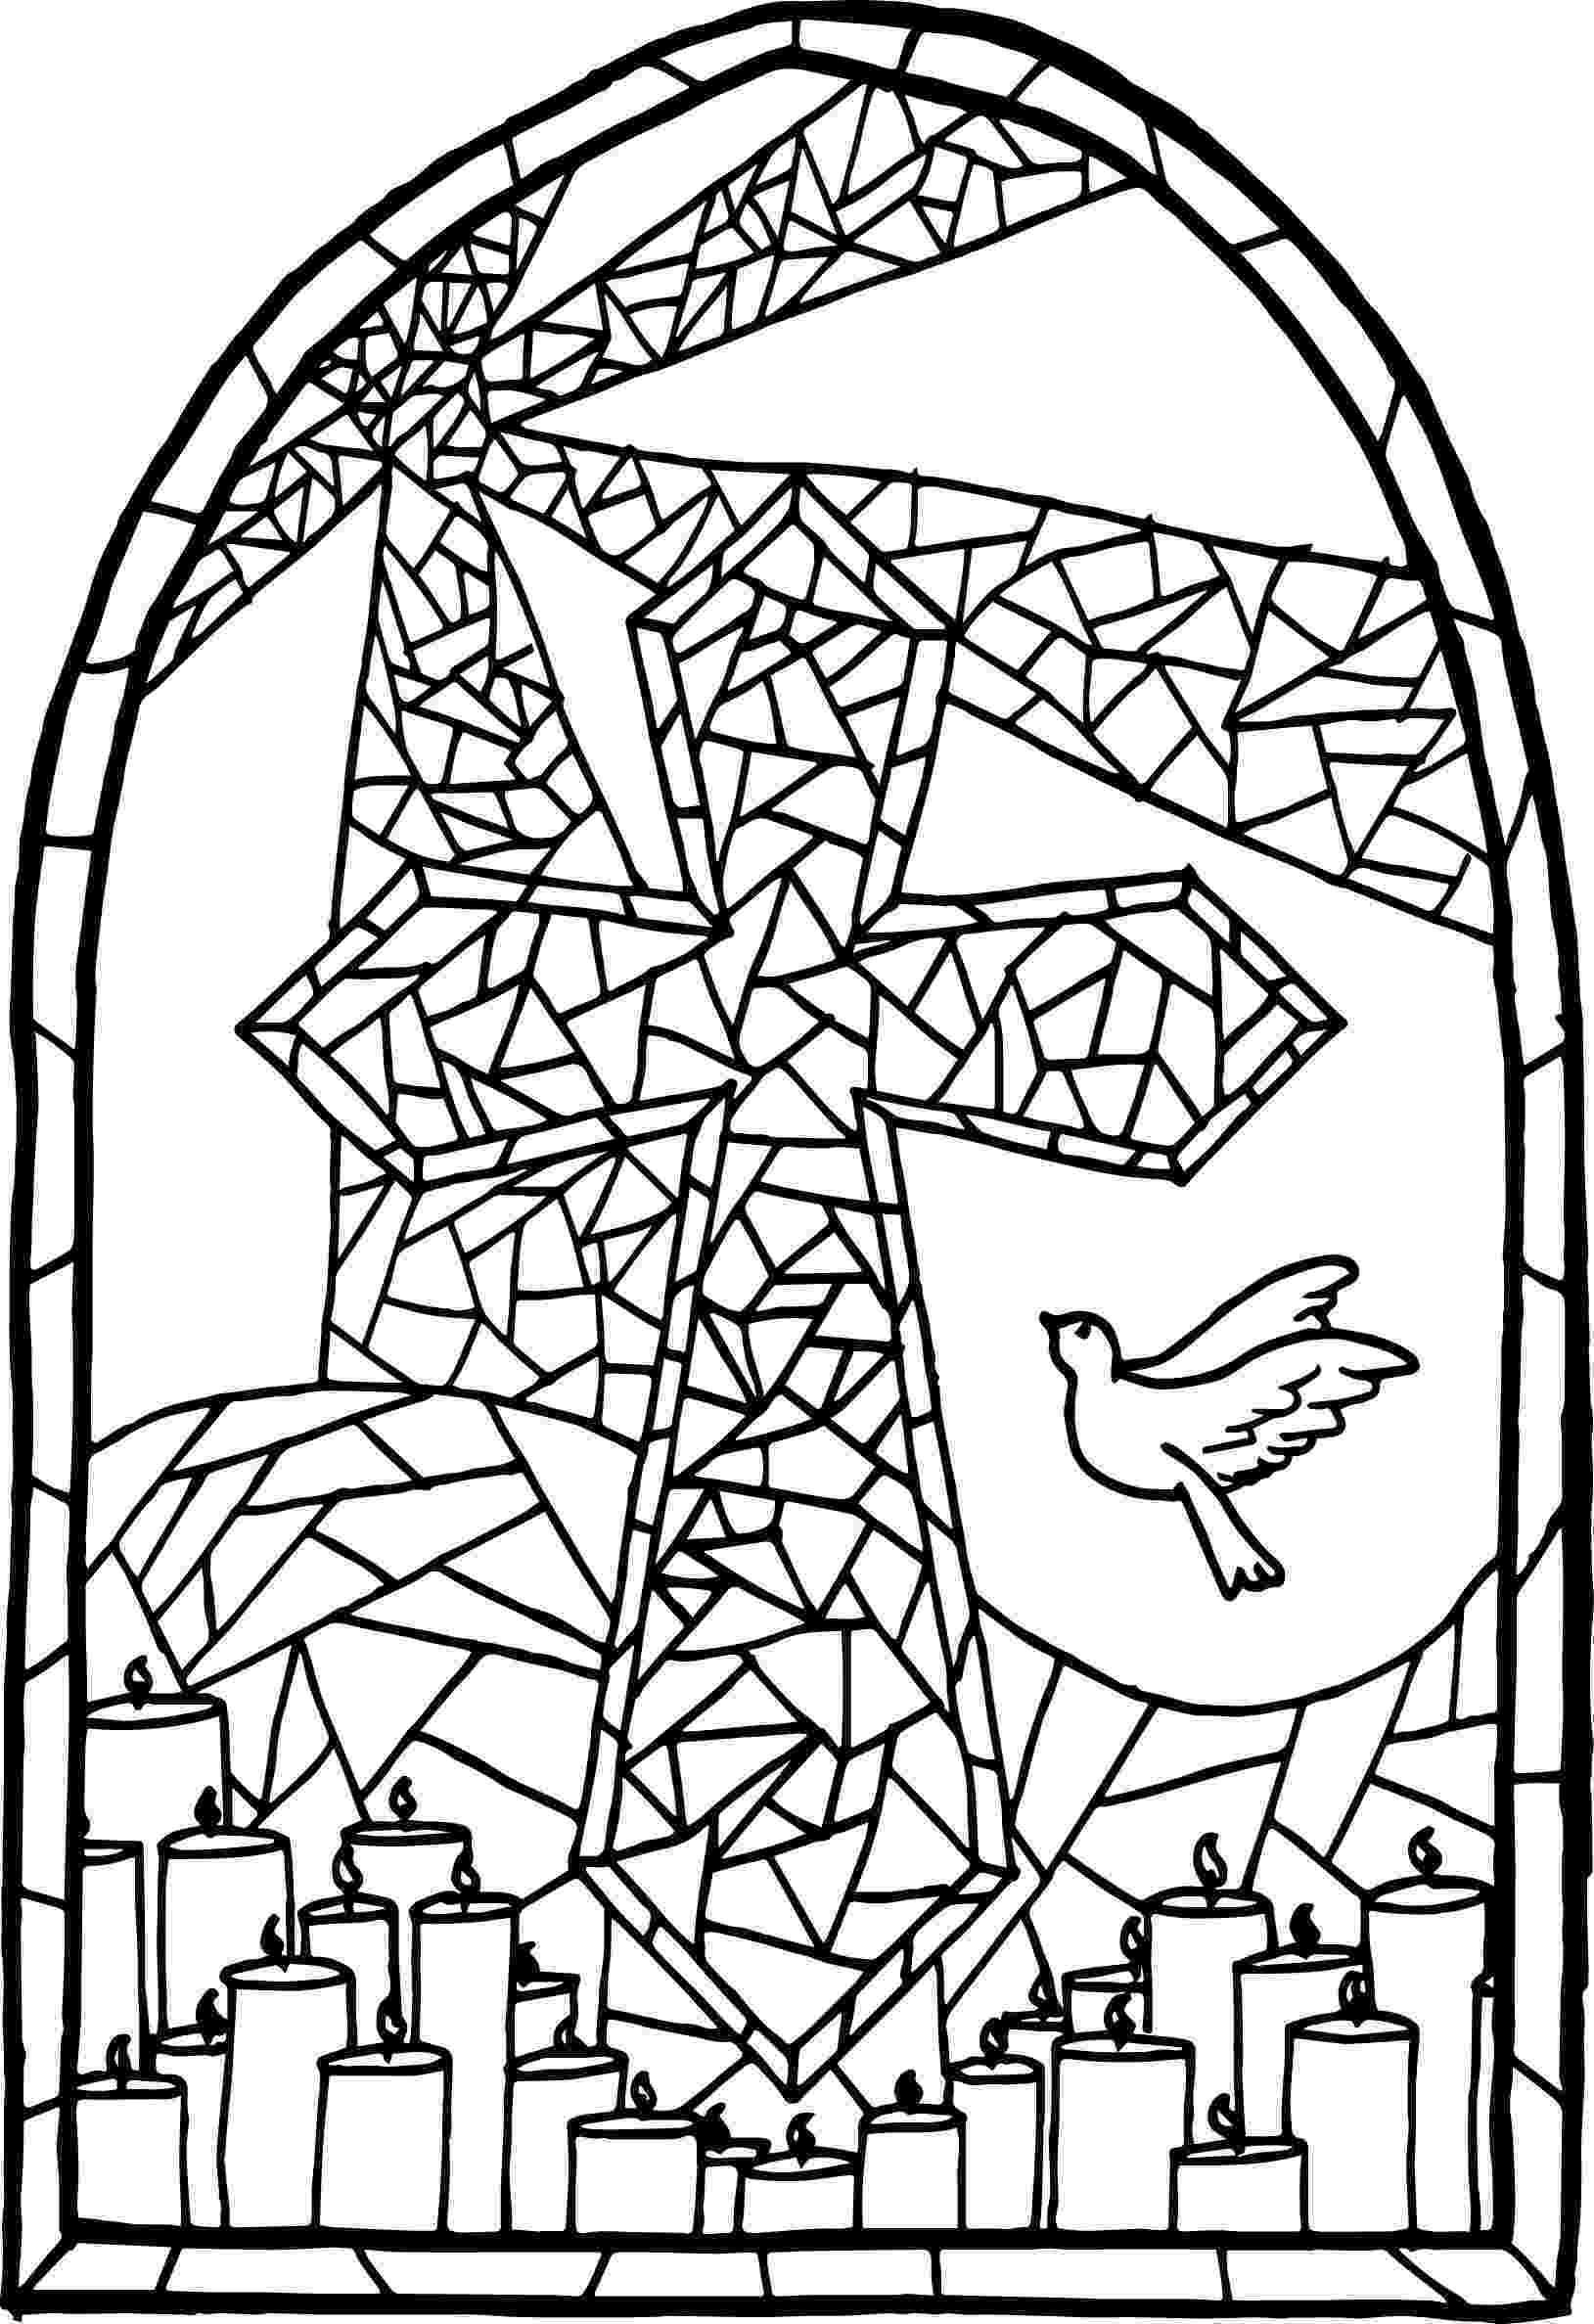 stained glass cross coloring page cross stained glass window colouring poster glass cross page coloring stained